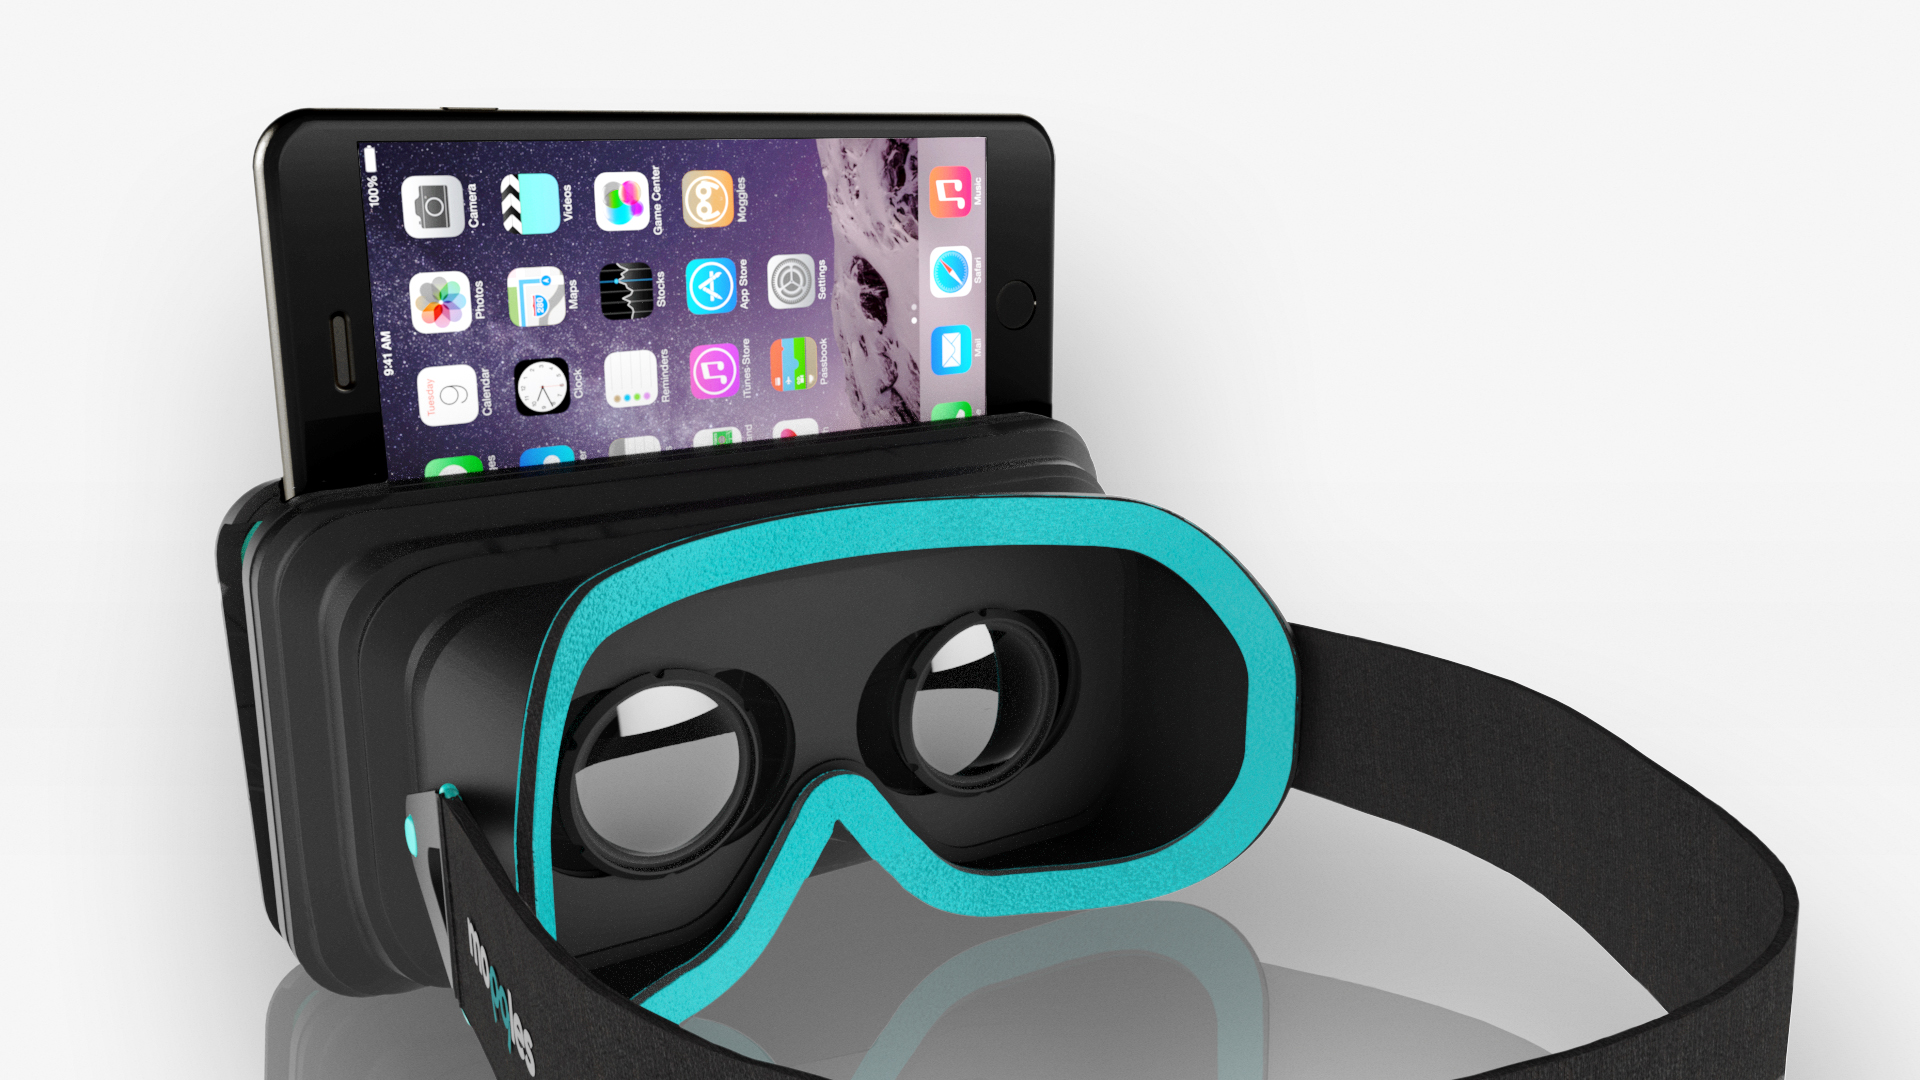 Moggles launches campaign on Indiegogo